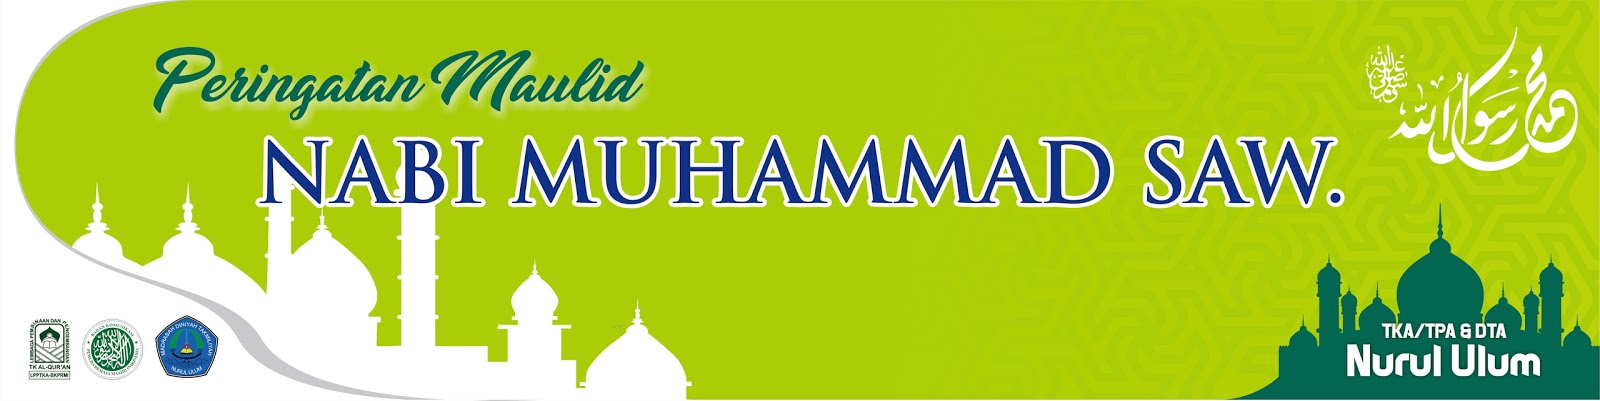 Download Template Spanduk Maulid Nabi Muhammad SAW. 2017 ...